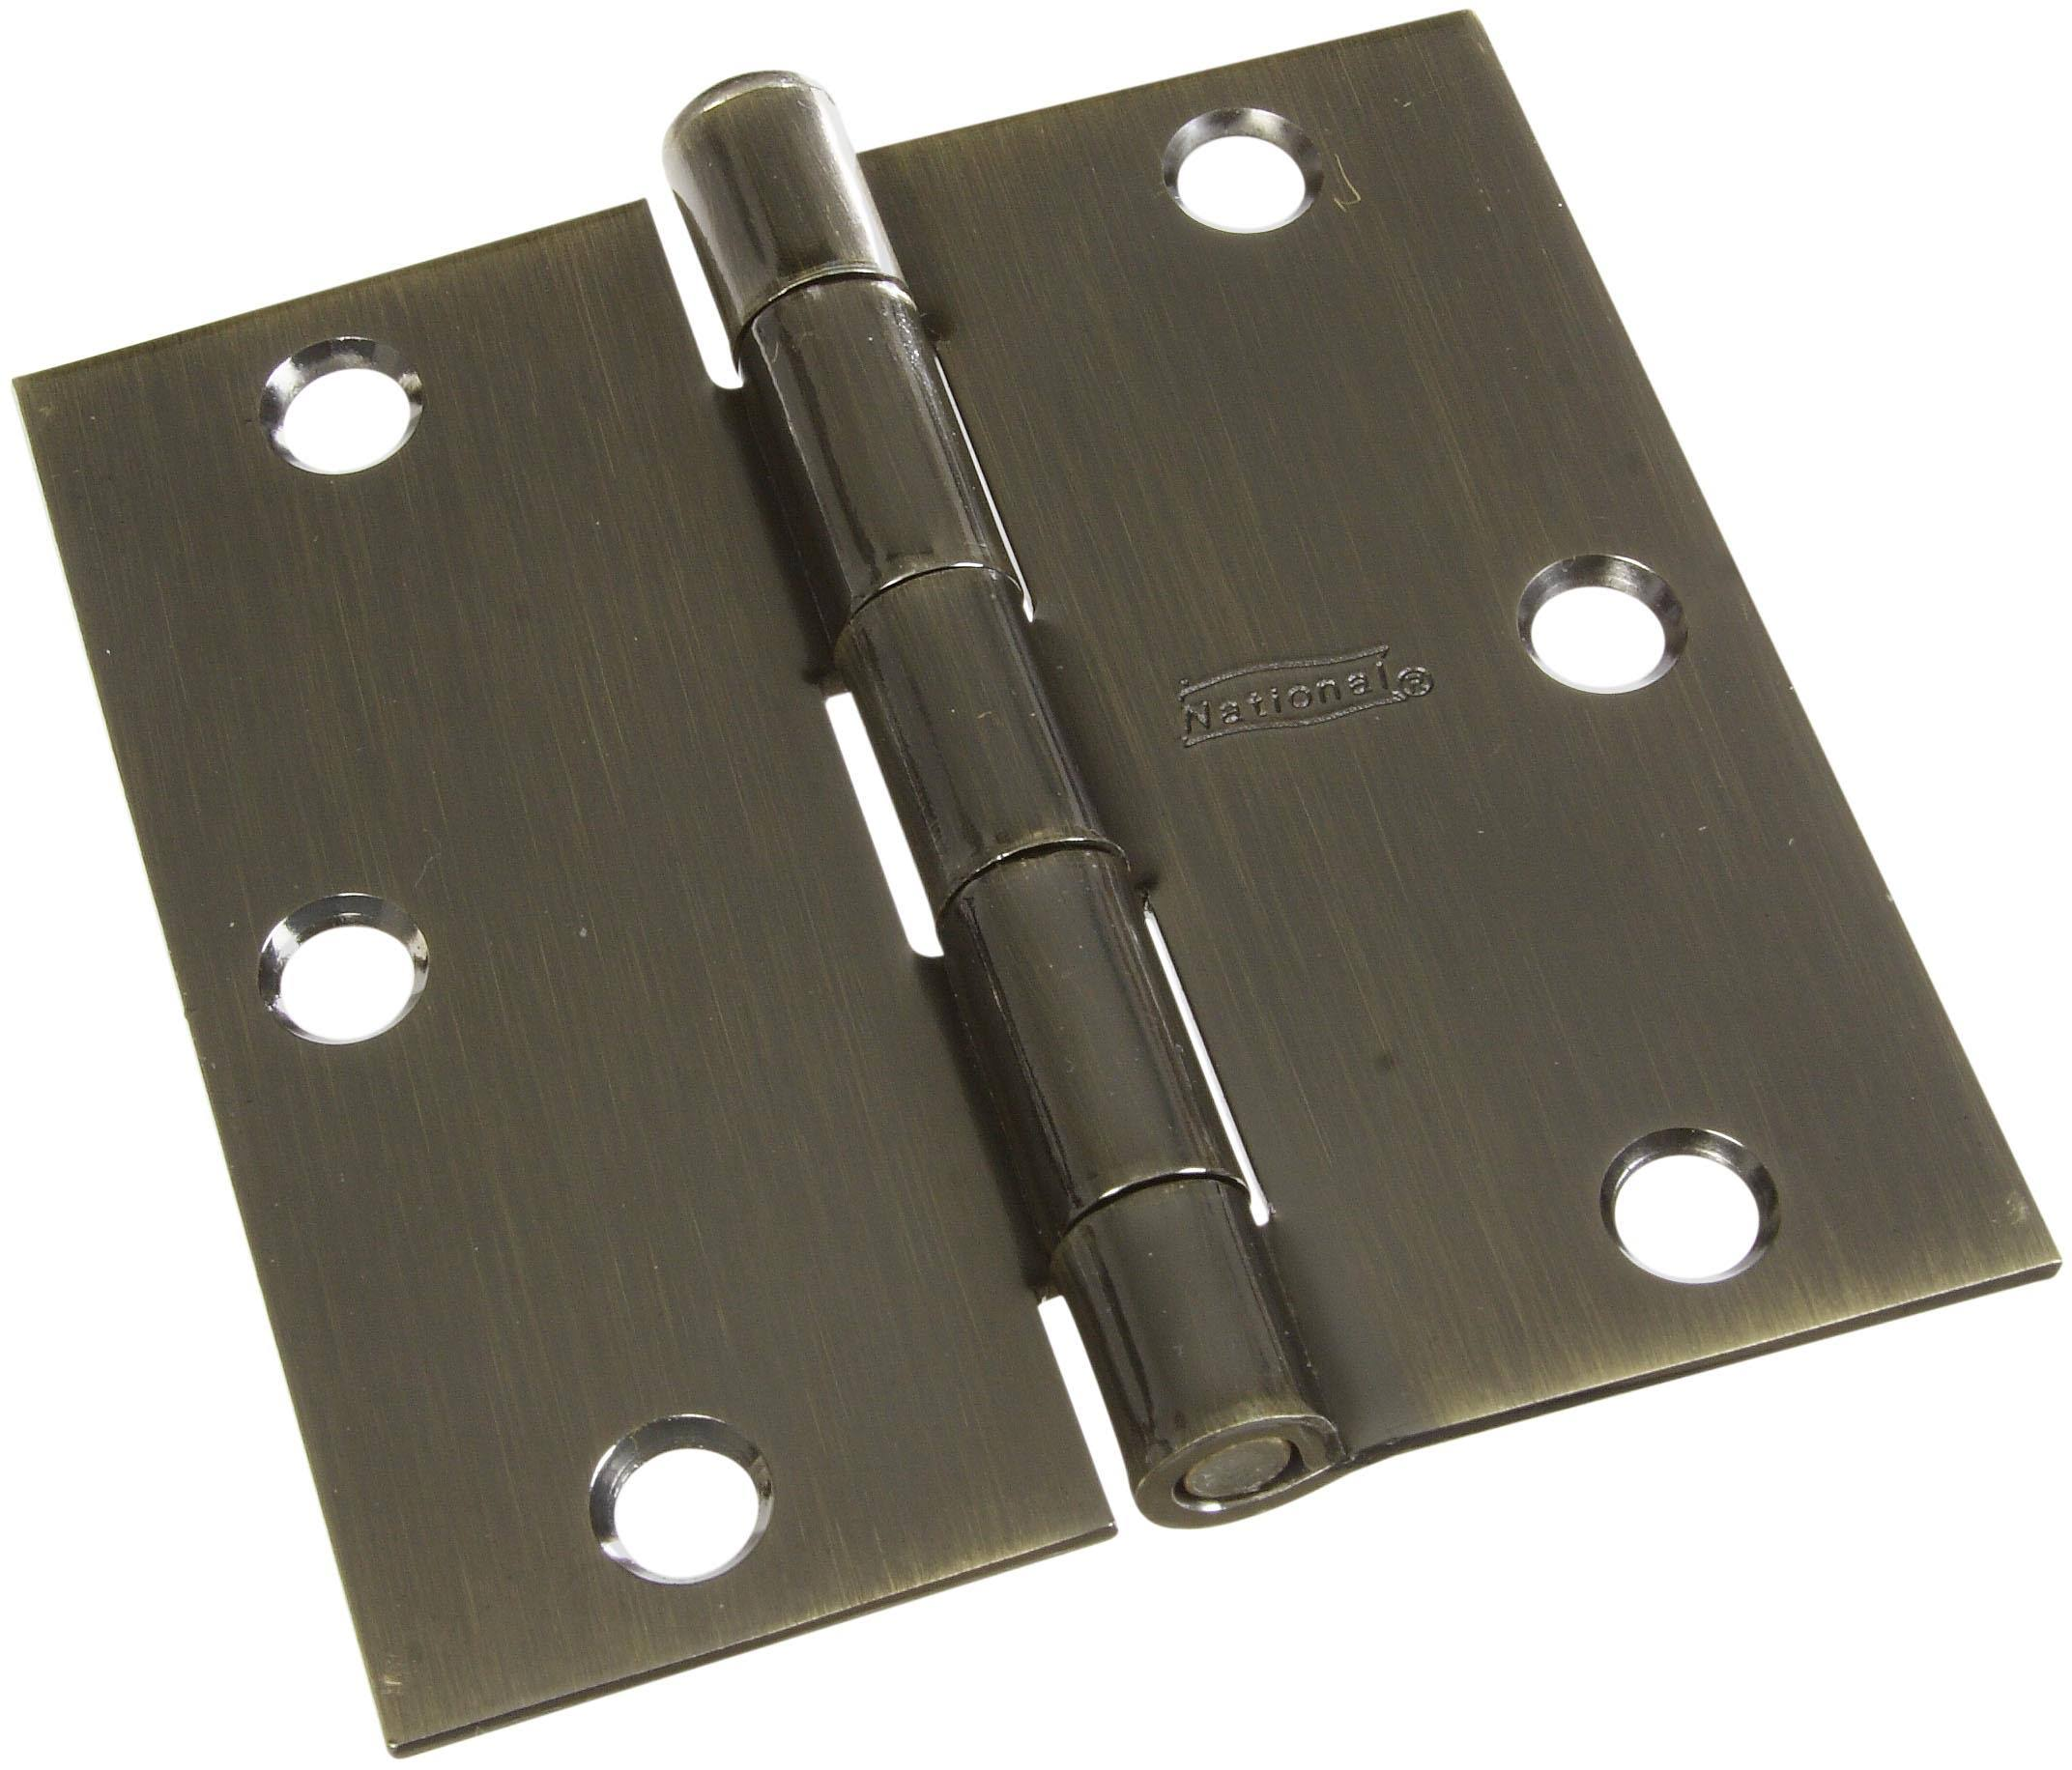 National Hardware Door Hinges 3-1/2in